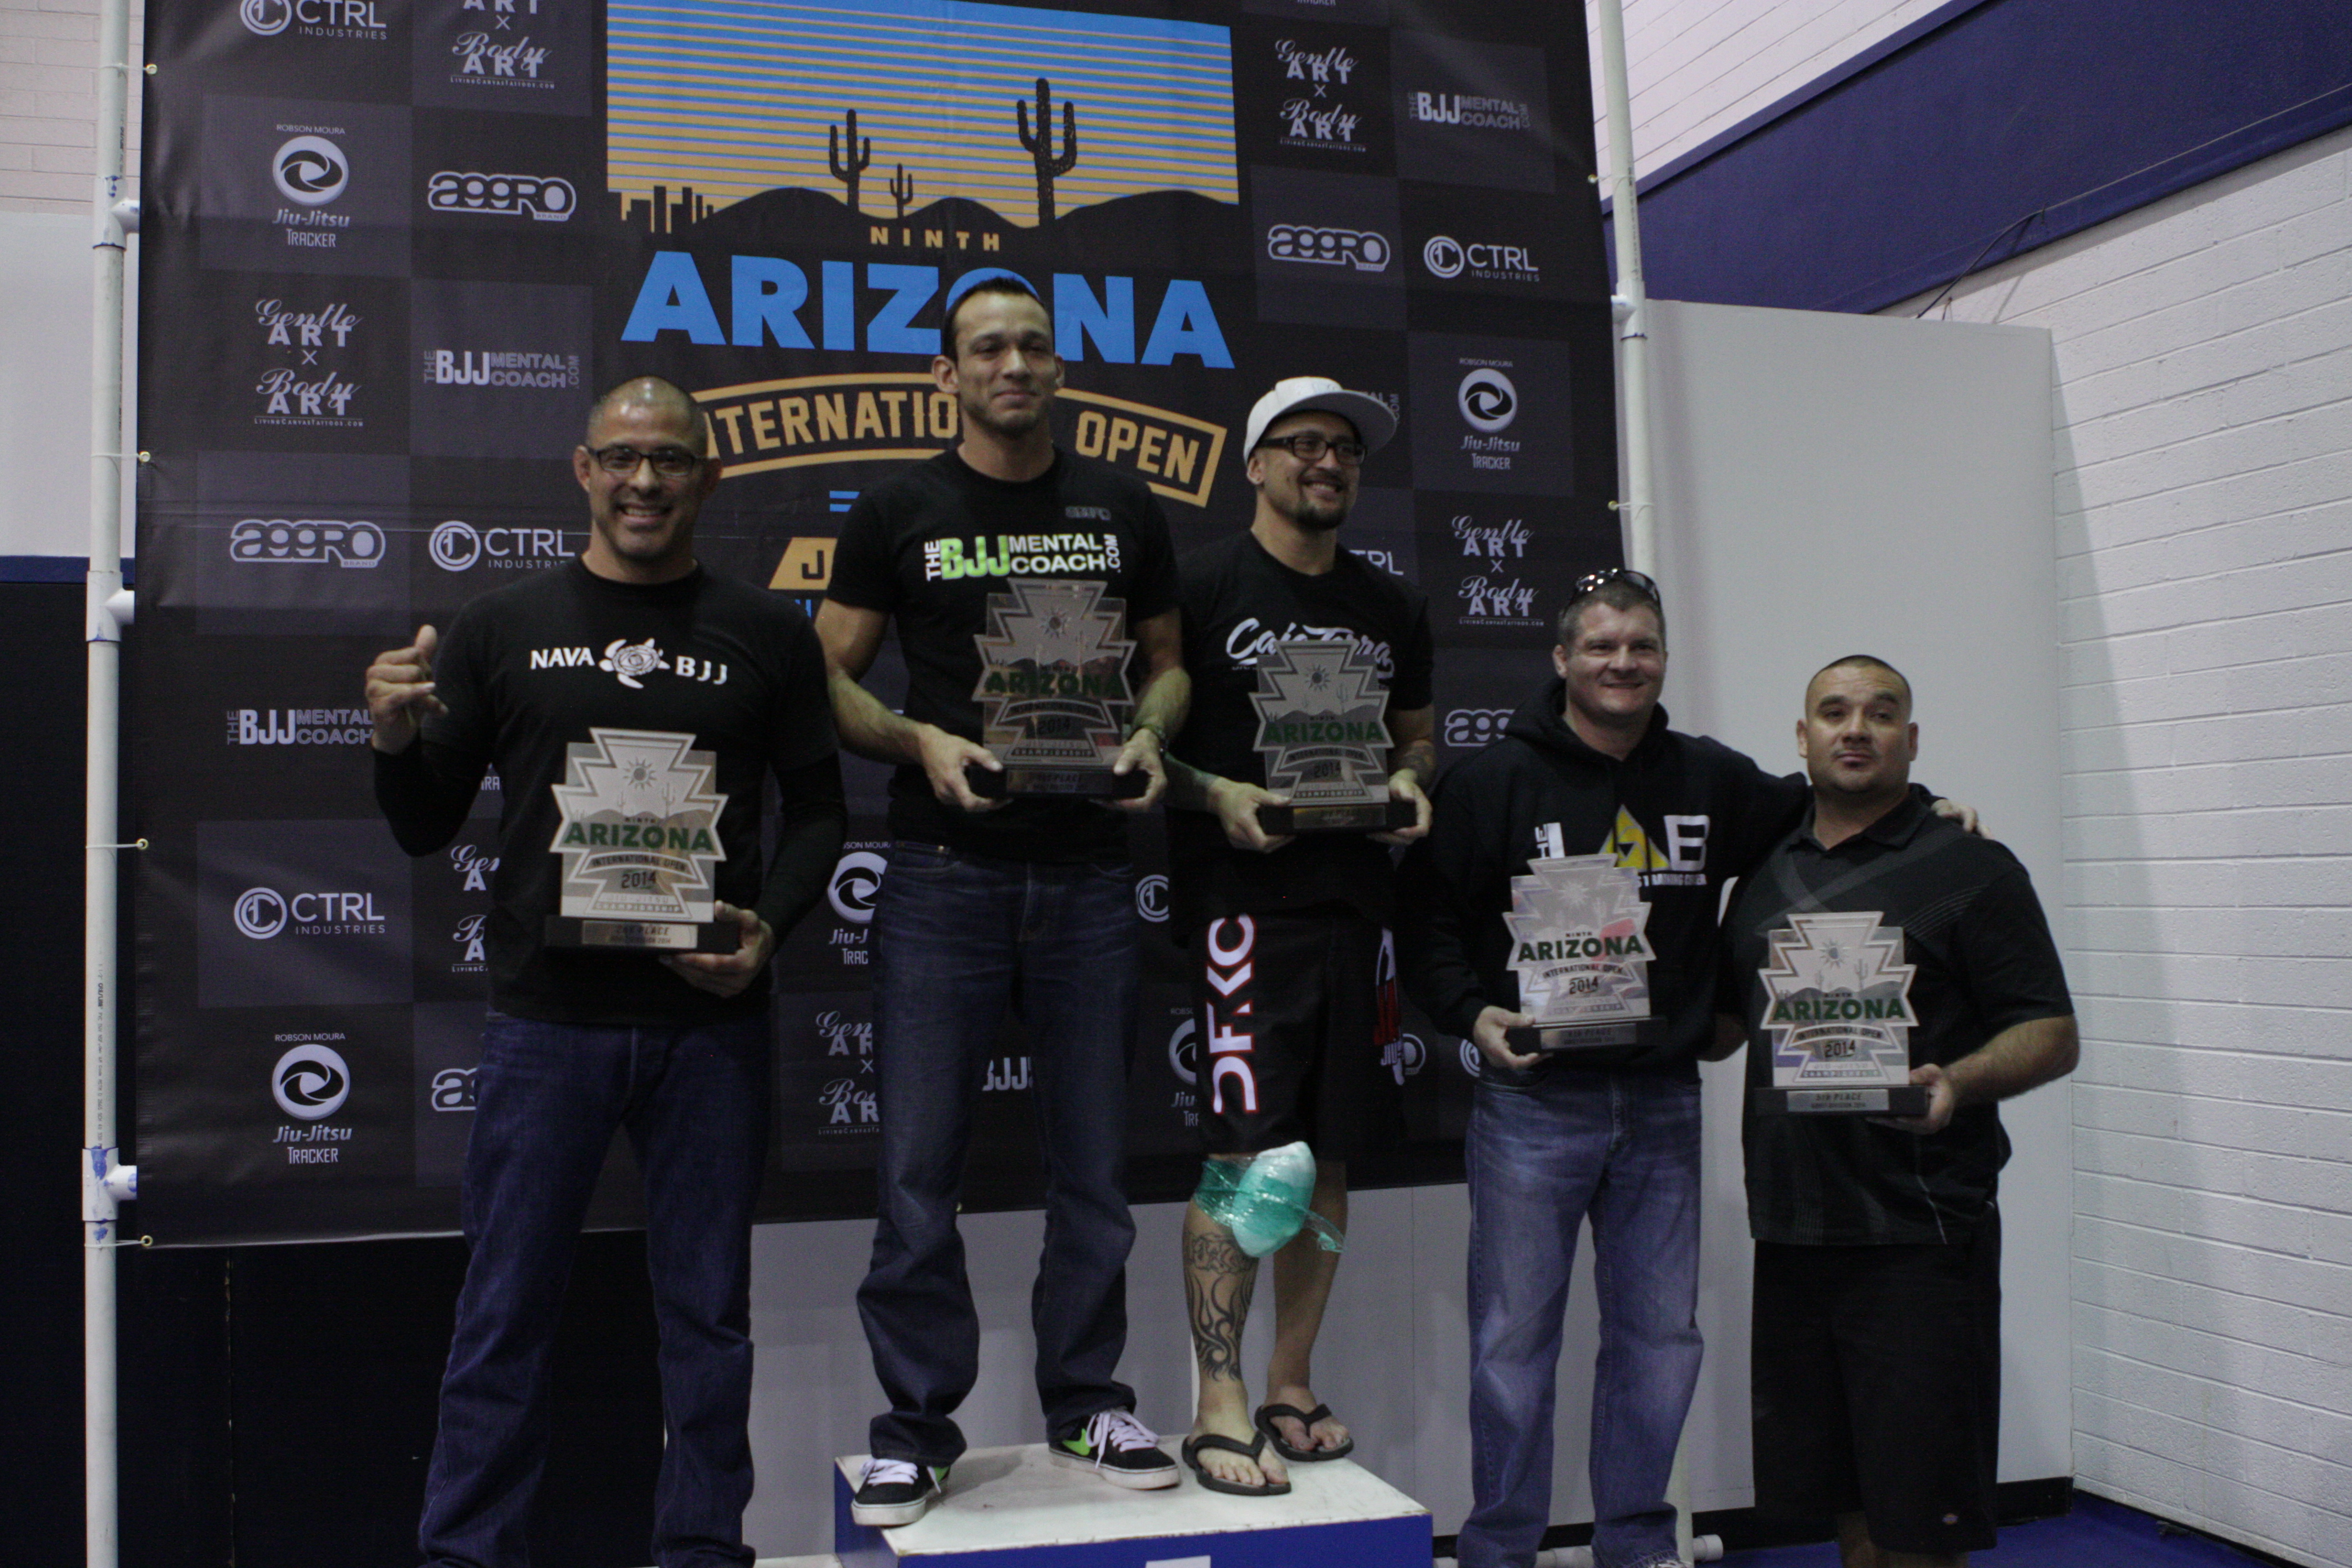 Teams on the podium. Photo: Personal Archive